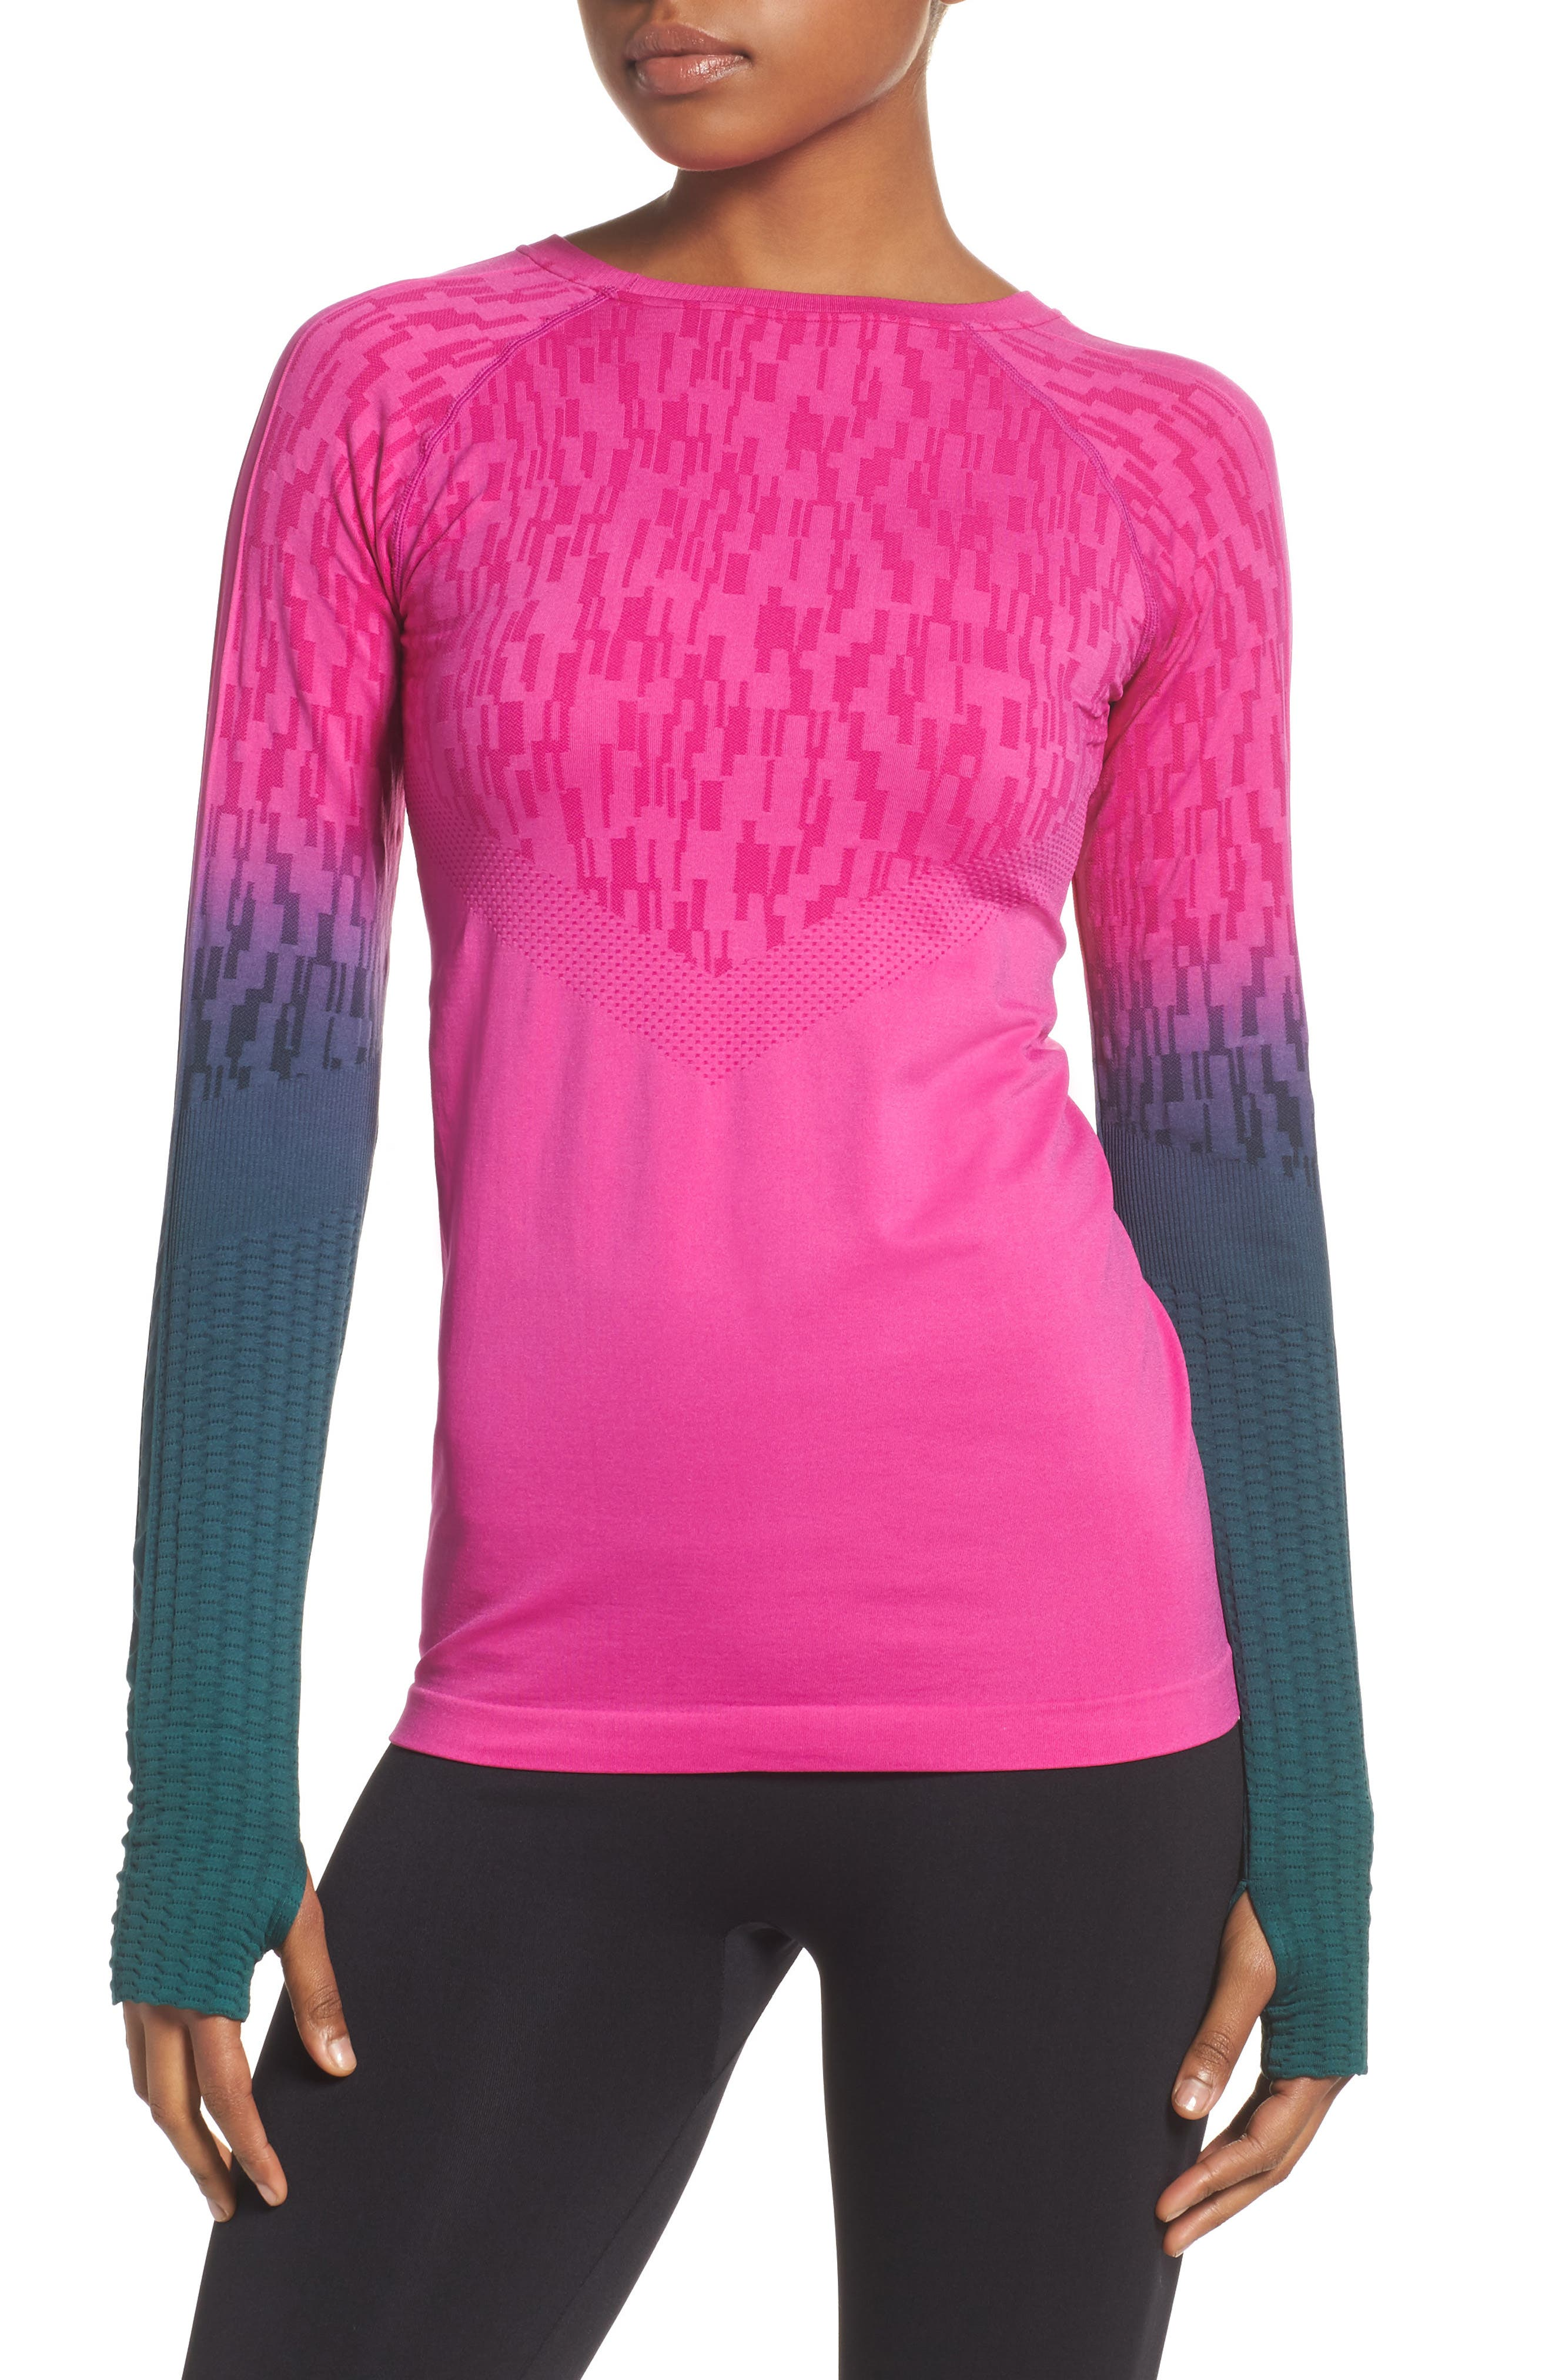 Odyssey Running Tee,                         Main,                         color, Pink/ Nocturne Green